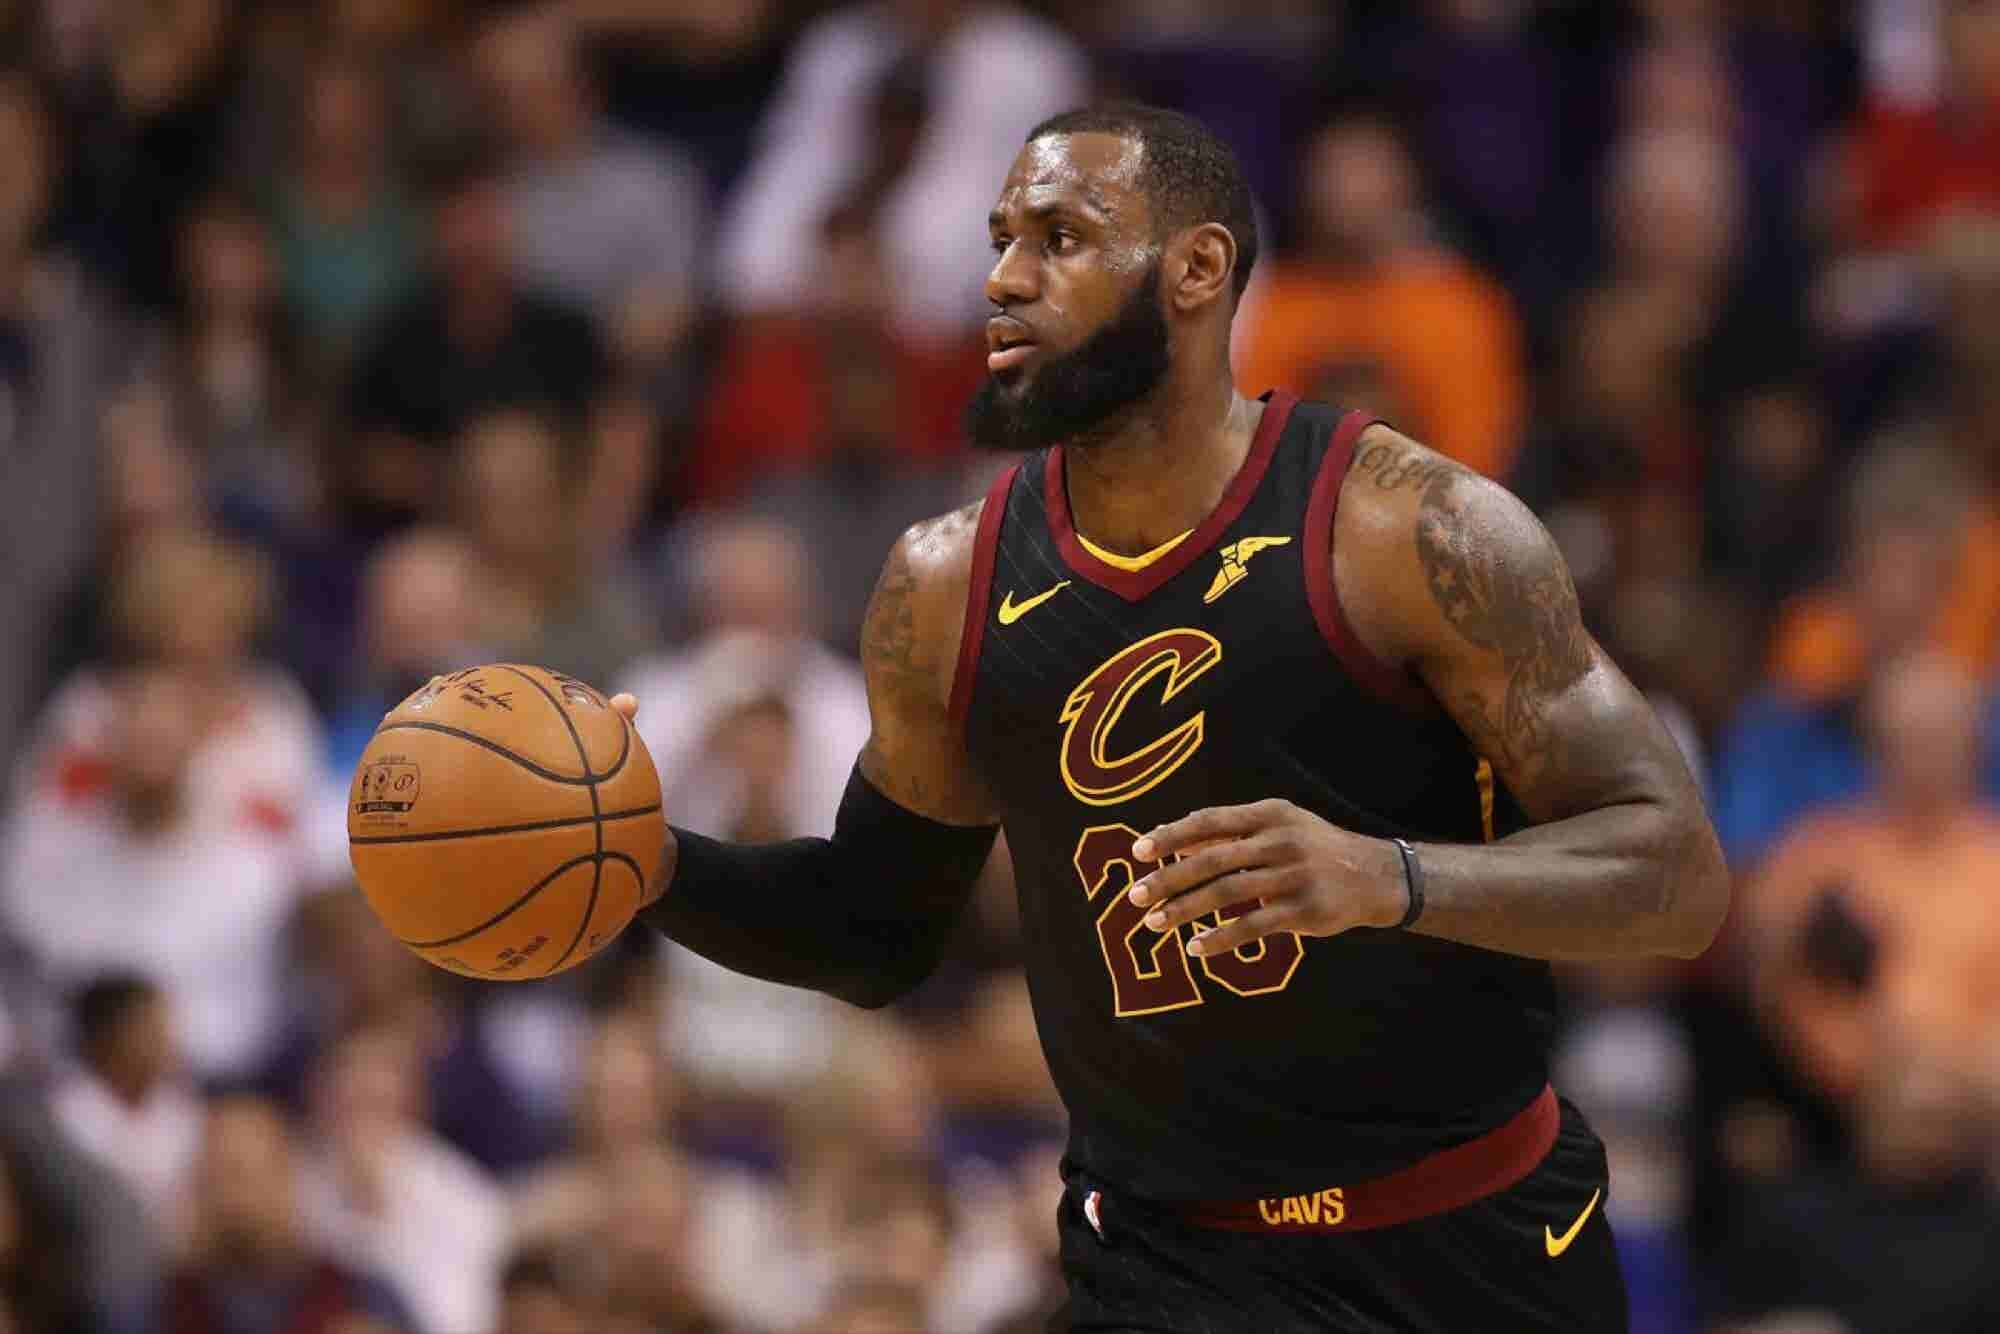 Why Are We So Good at Finding the Next LeBron but Not the Next Einstein?